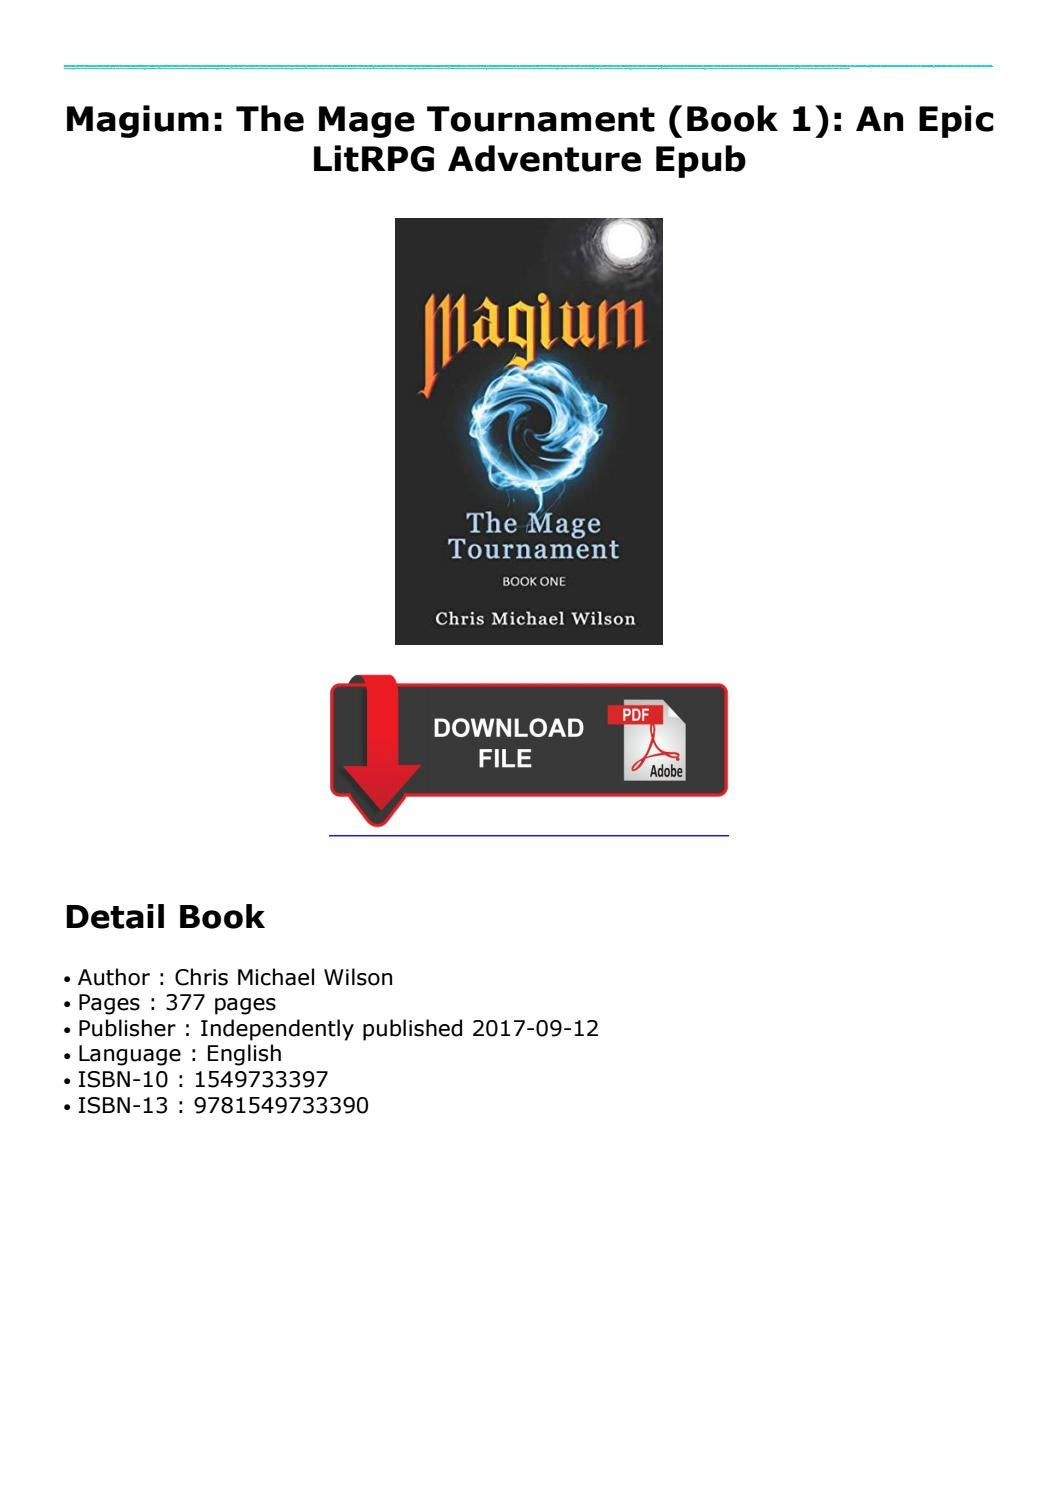 Discount Up to 70% -Magium: The Mage Tournament (Book 1): An